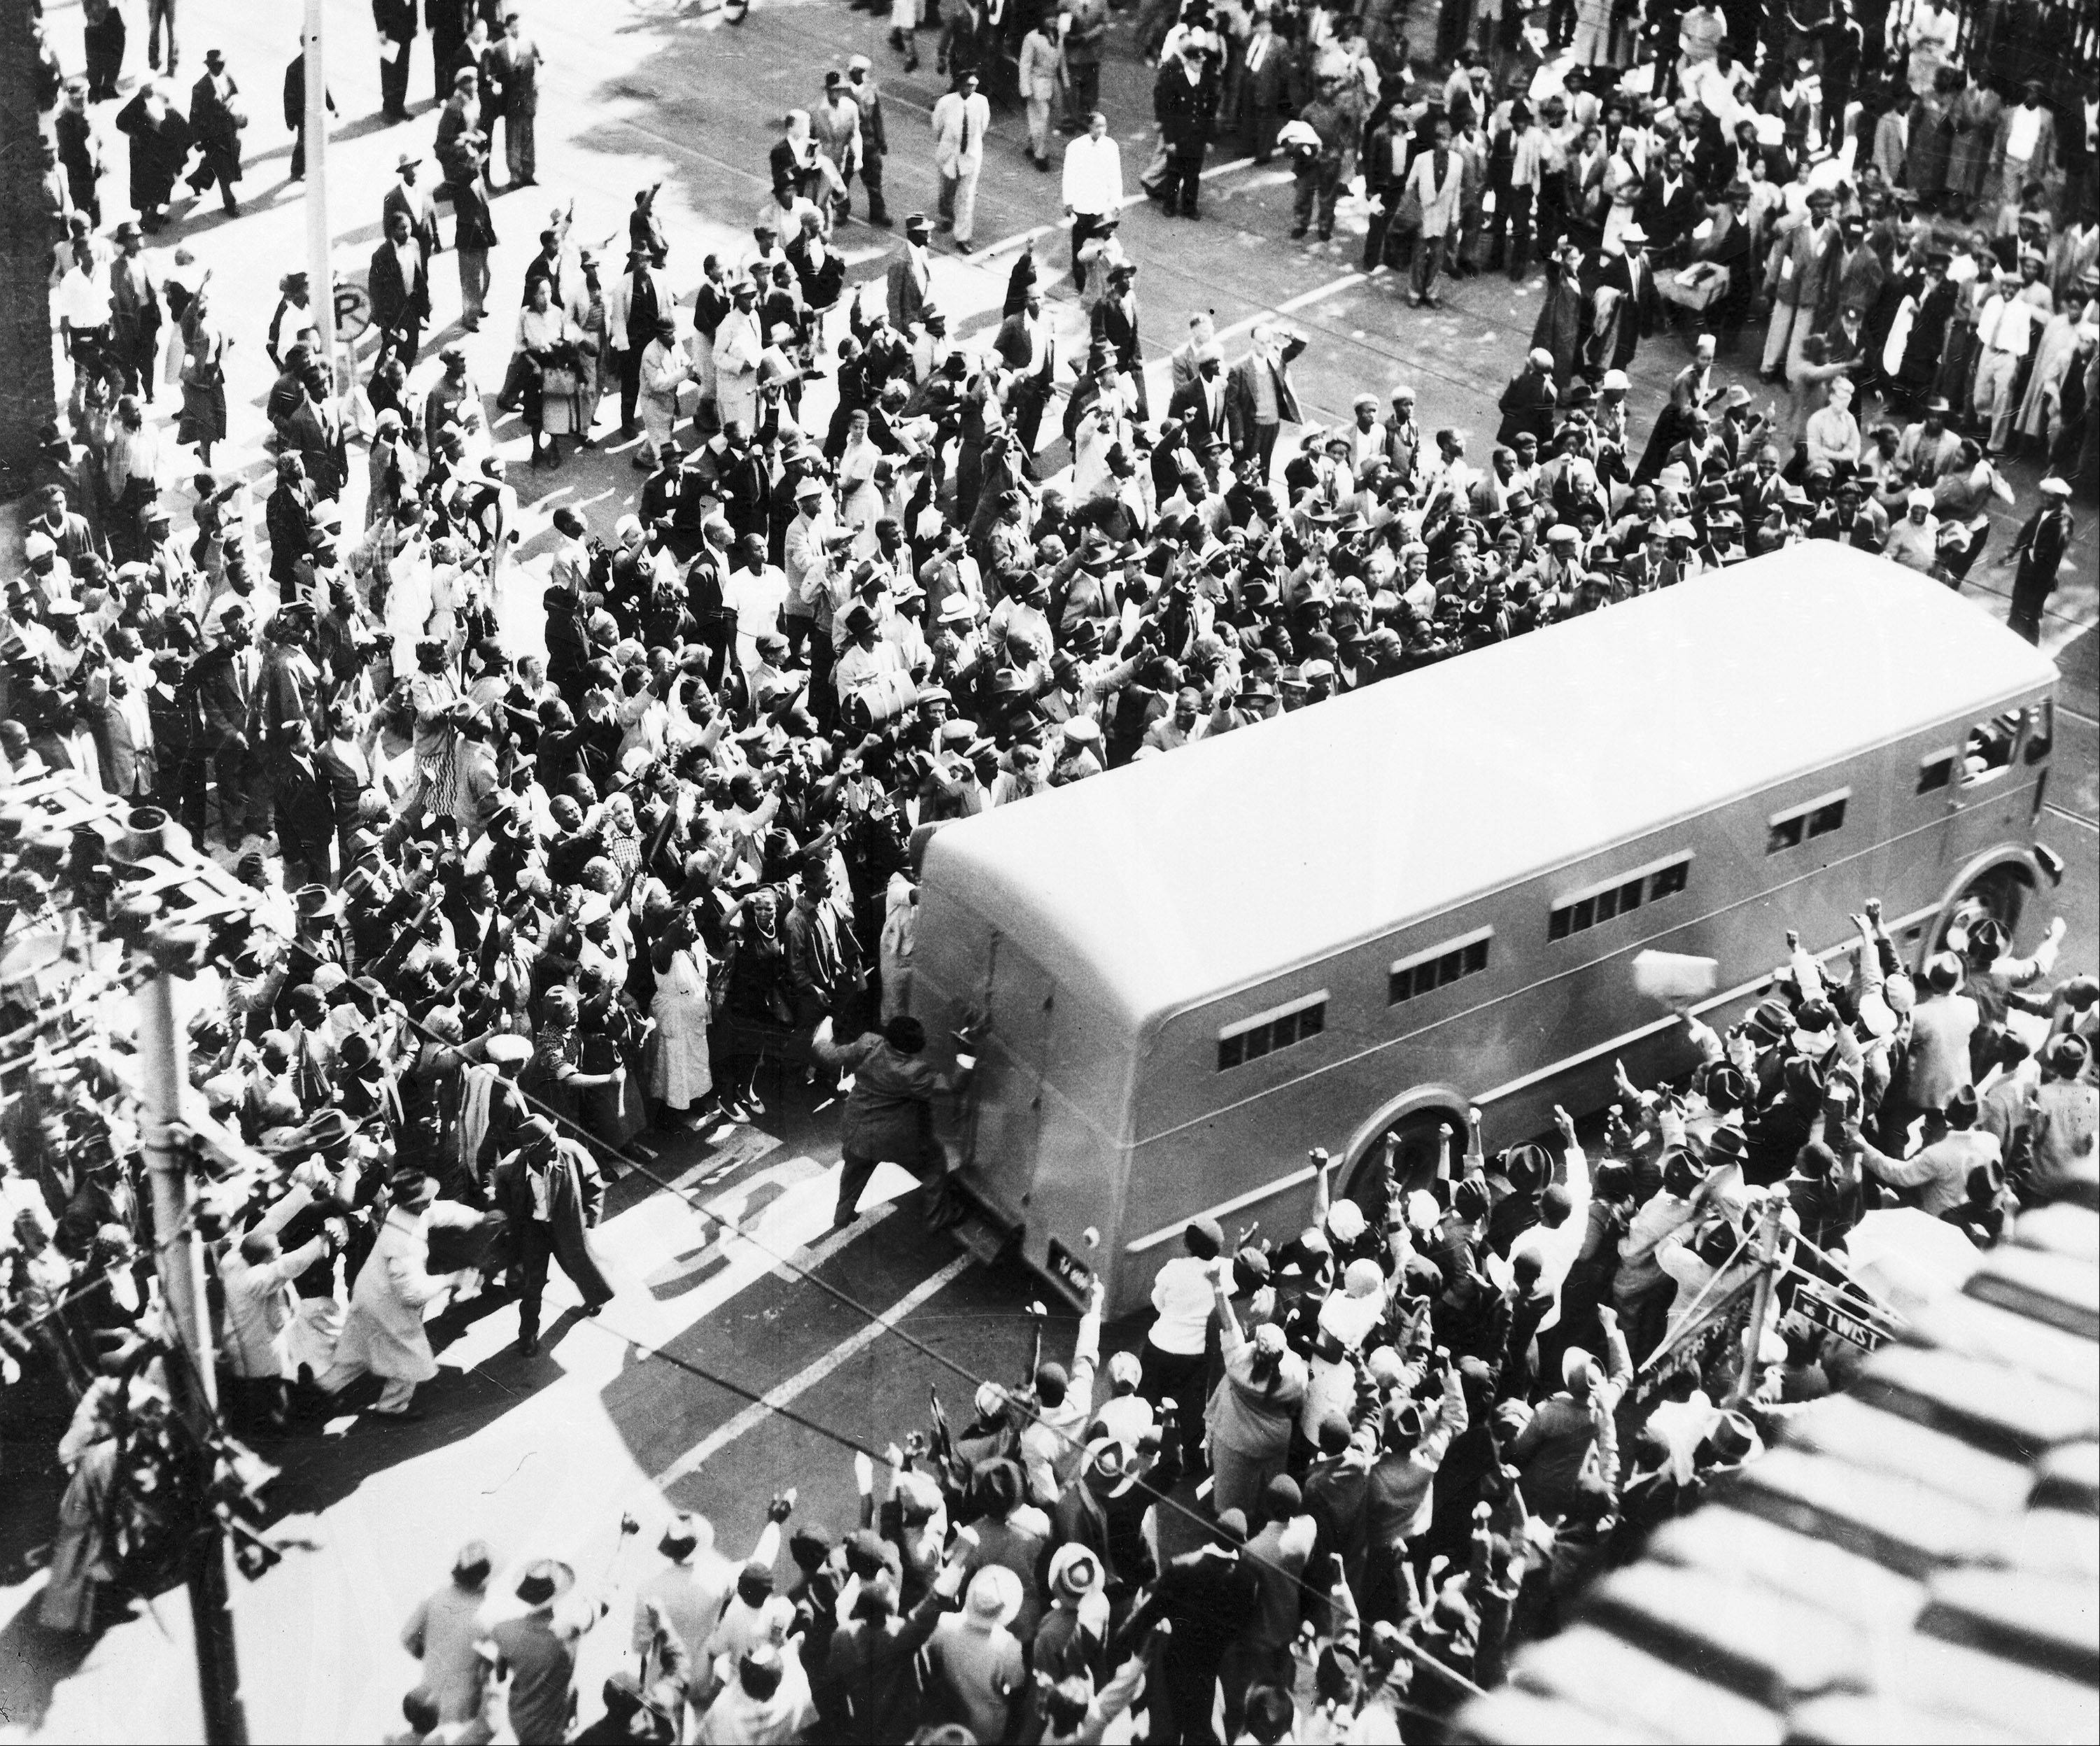 Crowds cheer as a police van brings prisoners to the Drill Hall, in Johannesburg, South Africa, Dec. 31, 1956, for the start of the 'Treason Trial'. Nelson Mandela was among the people arrested and standing trial.